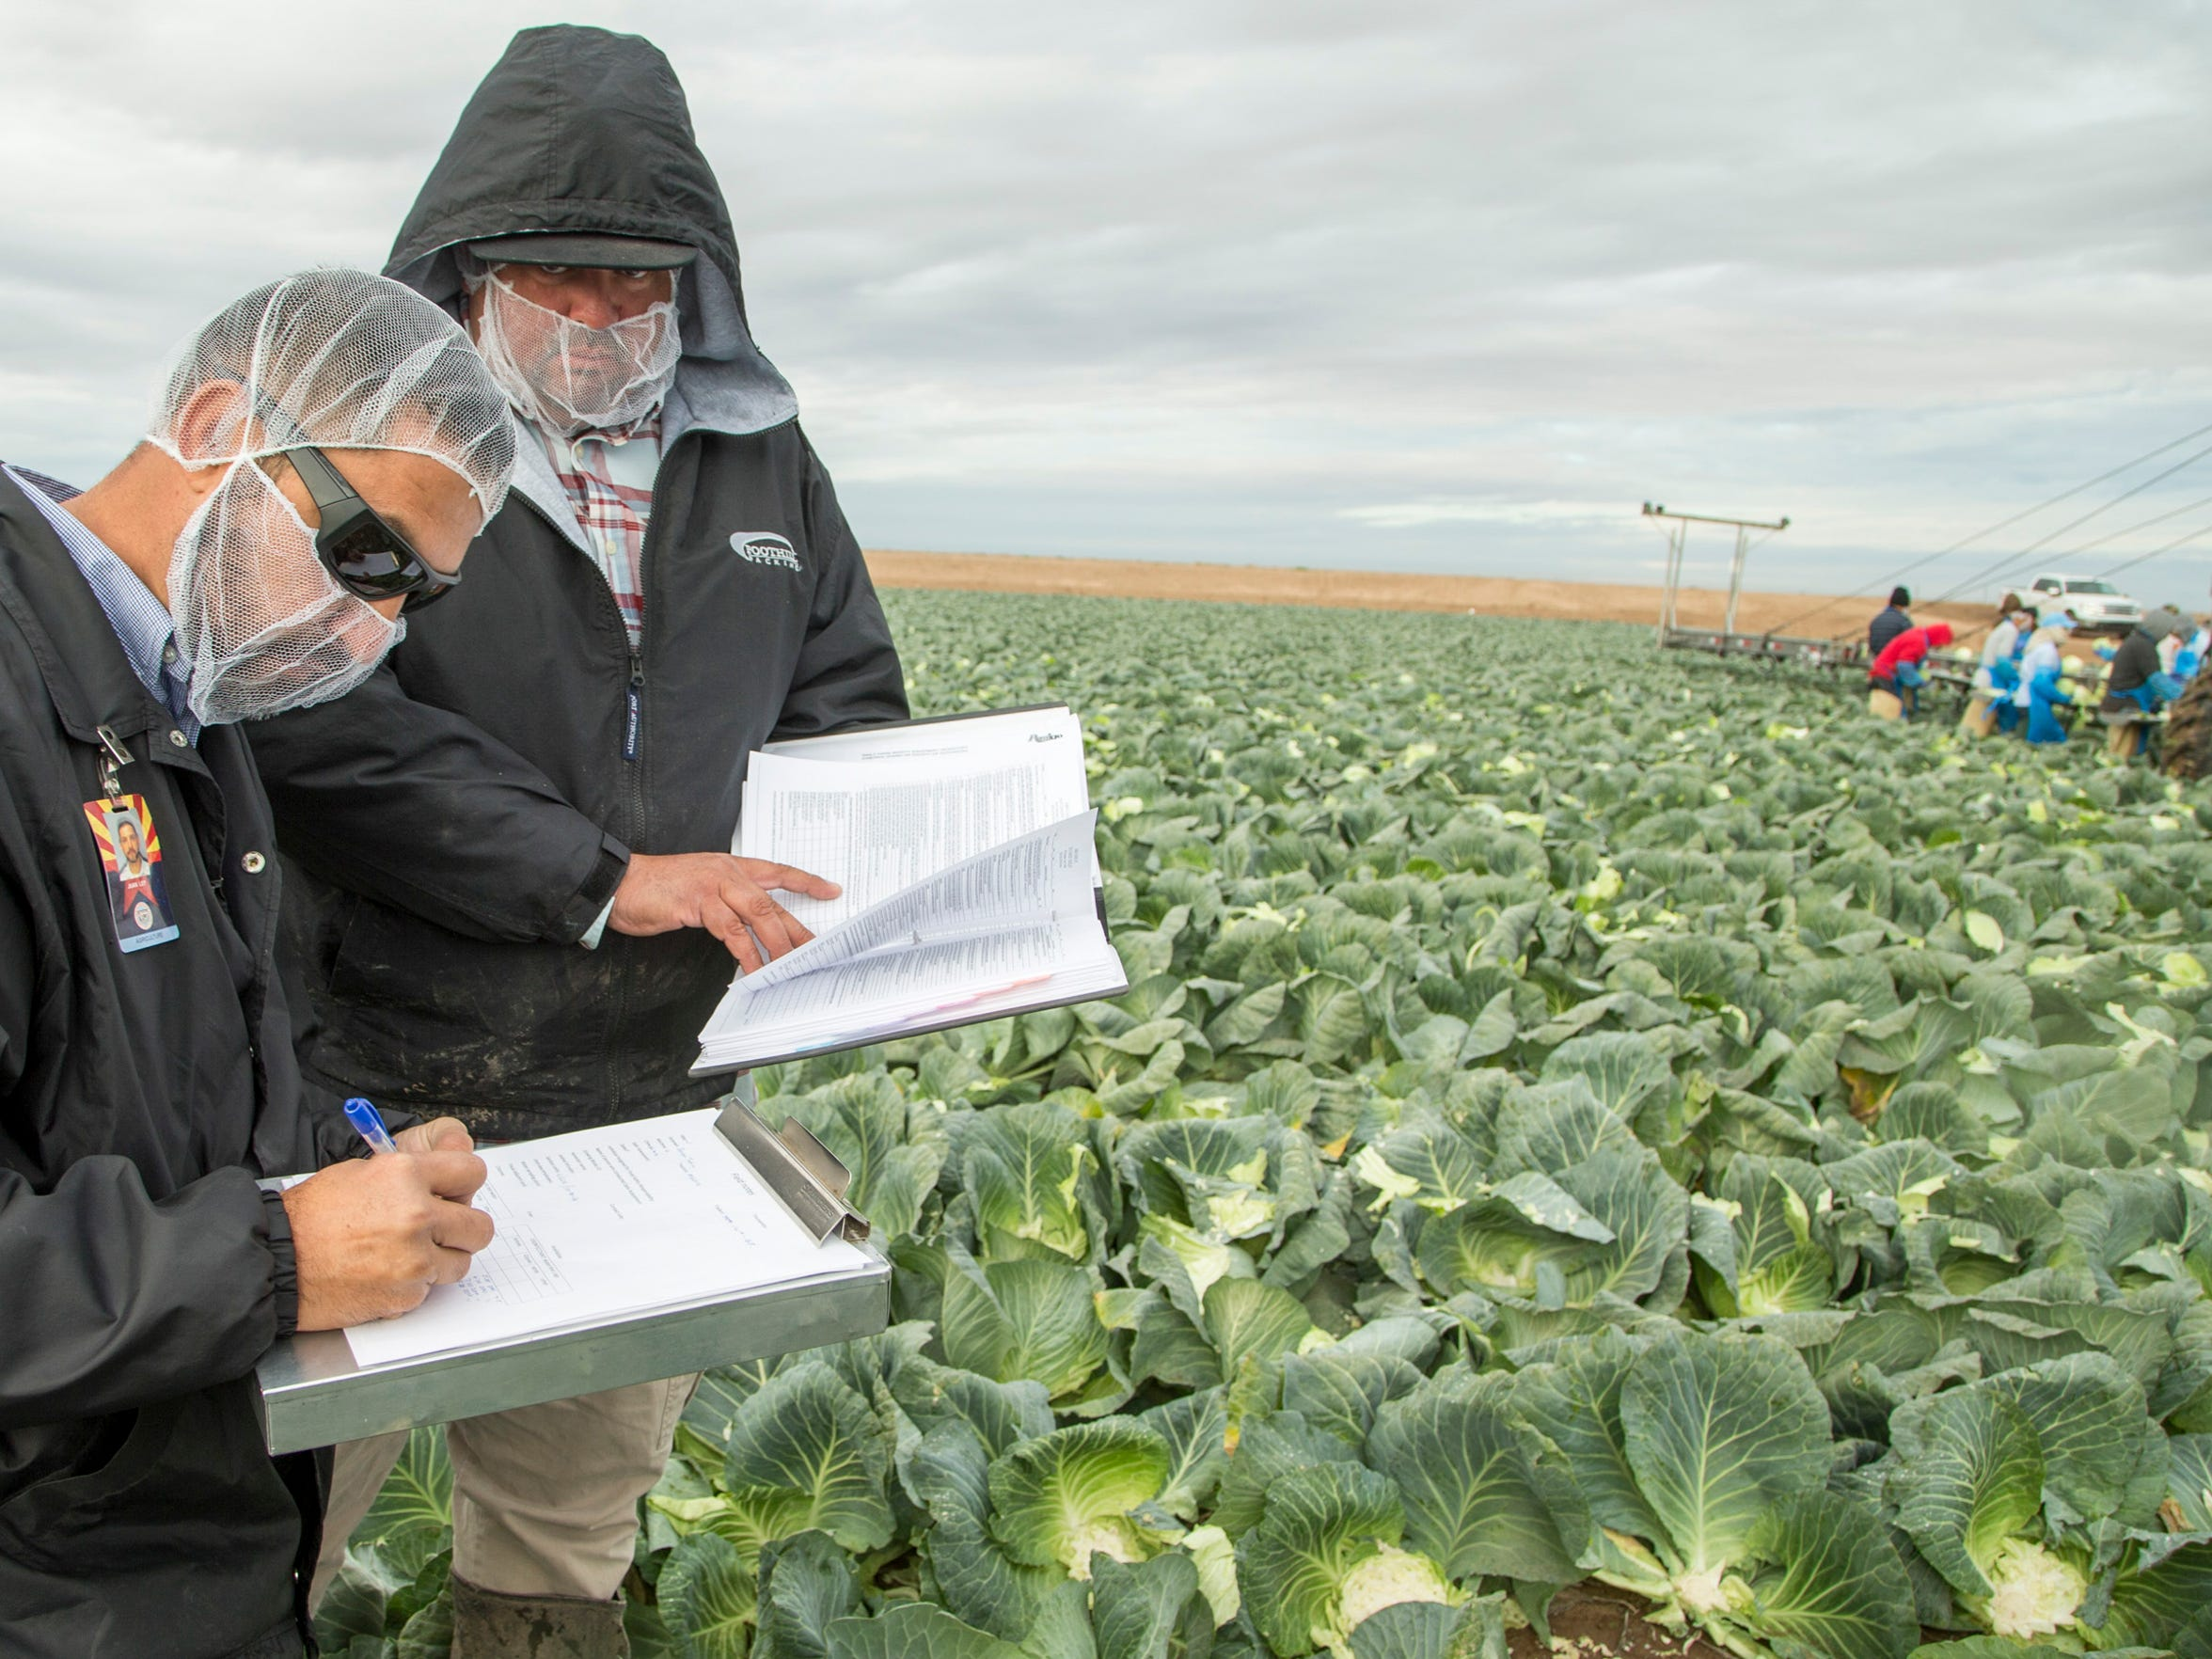 Arizona Department of Agriculture Market Inspecto Juan C. Ley (left) makes a scheduled audit at Amigo Farms. Ley inspects fields,  farm equipment and support facilities. He also interviews workers. The process can take more than six hours.